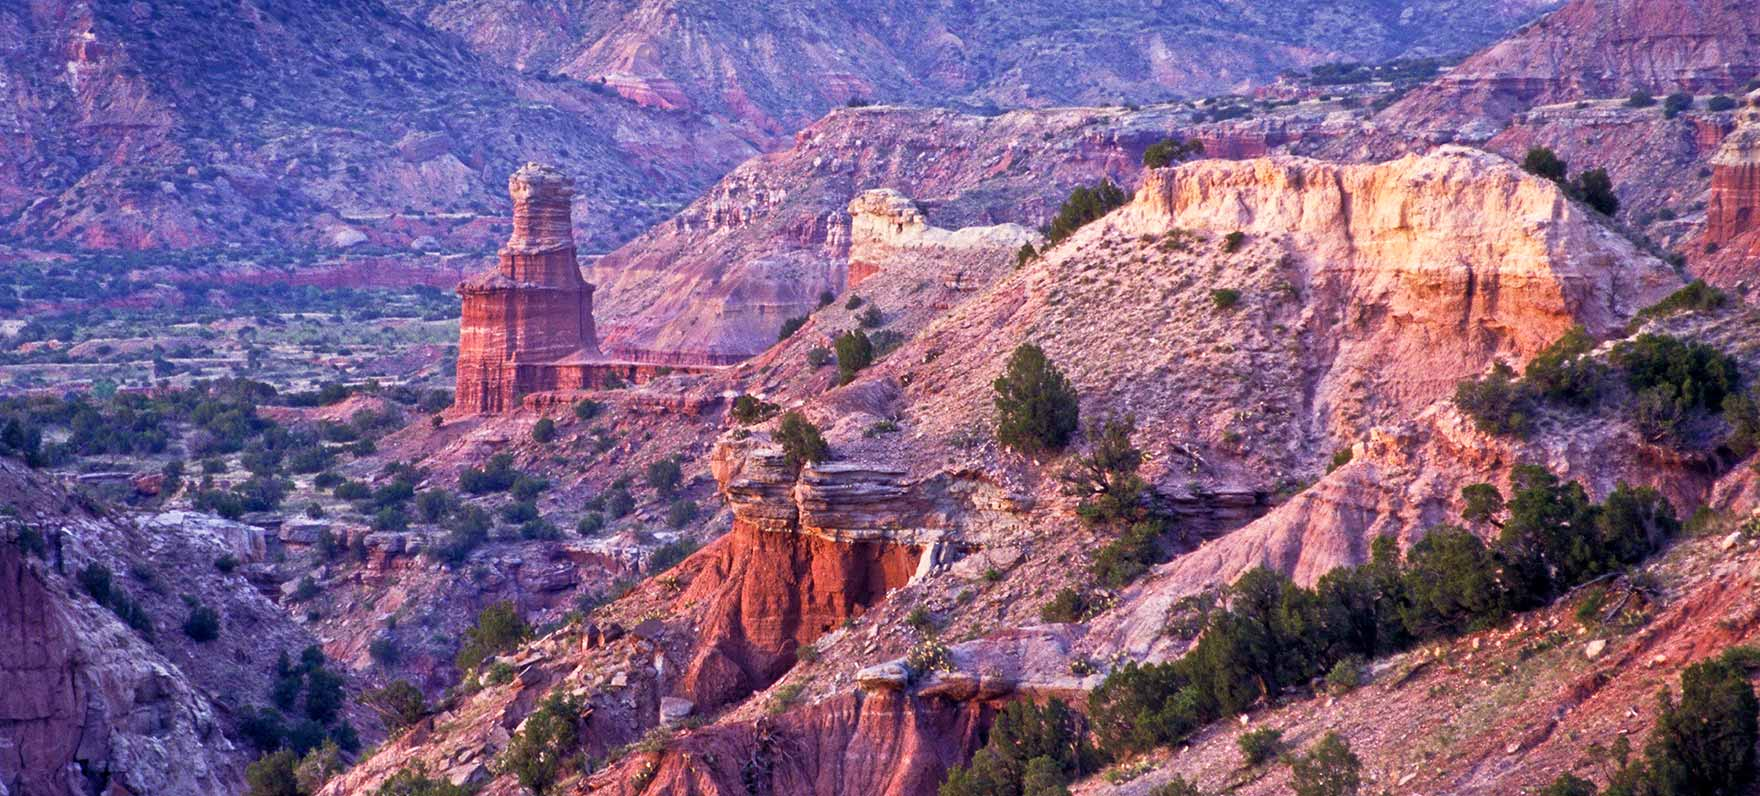 Image via the  Palo Duro Canyon State Park's website